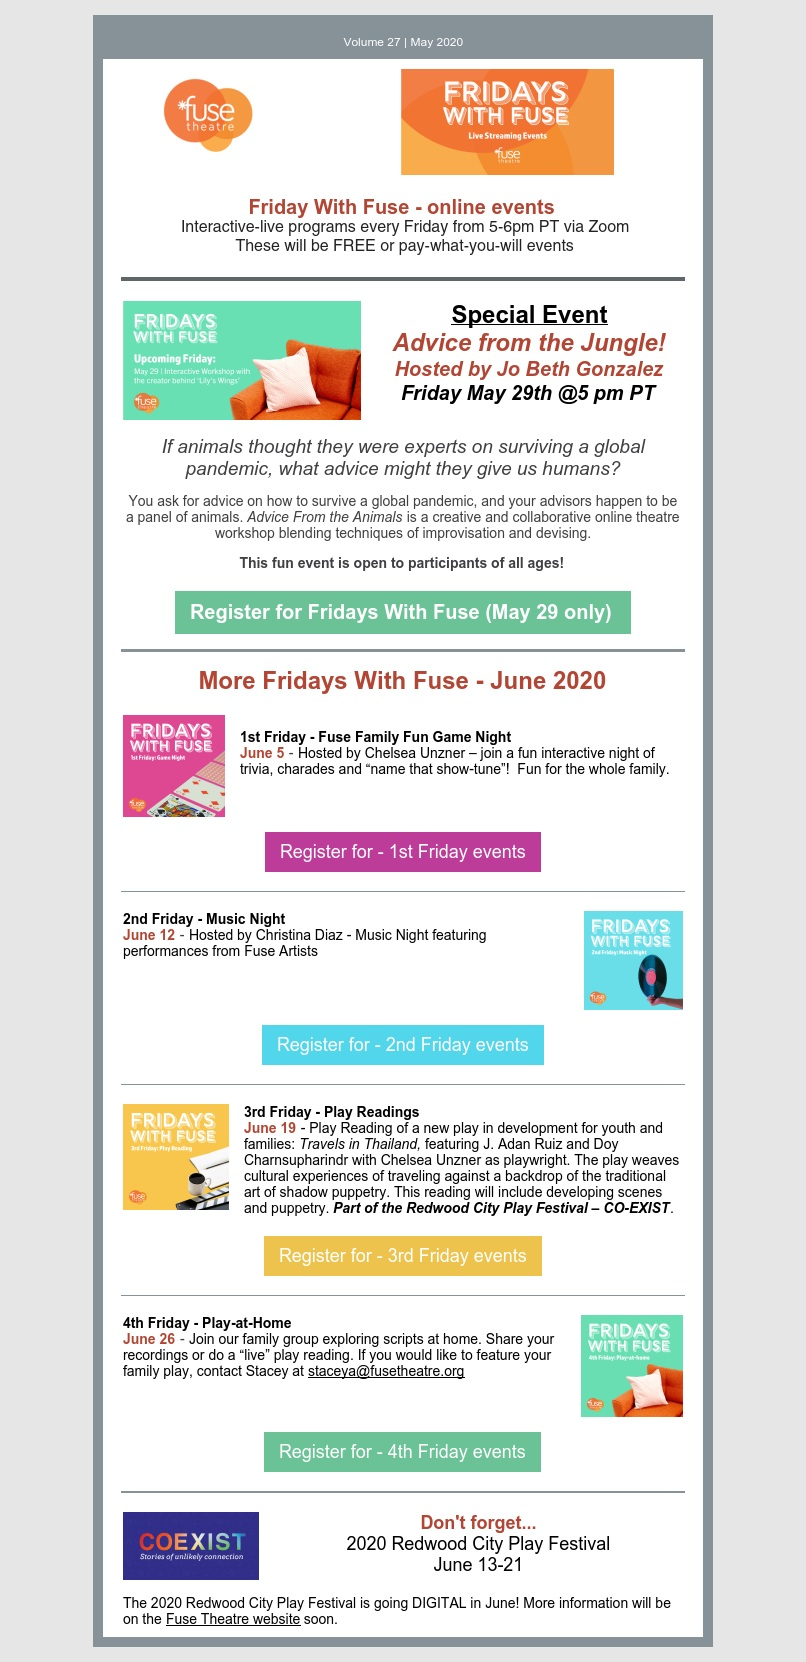 Fridays With Fuse May 28 2020